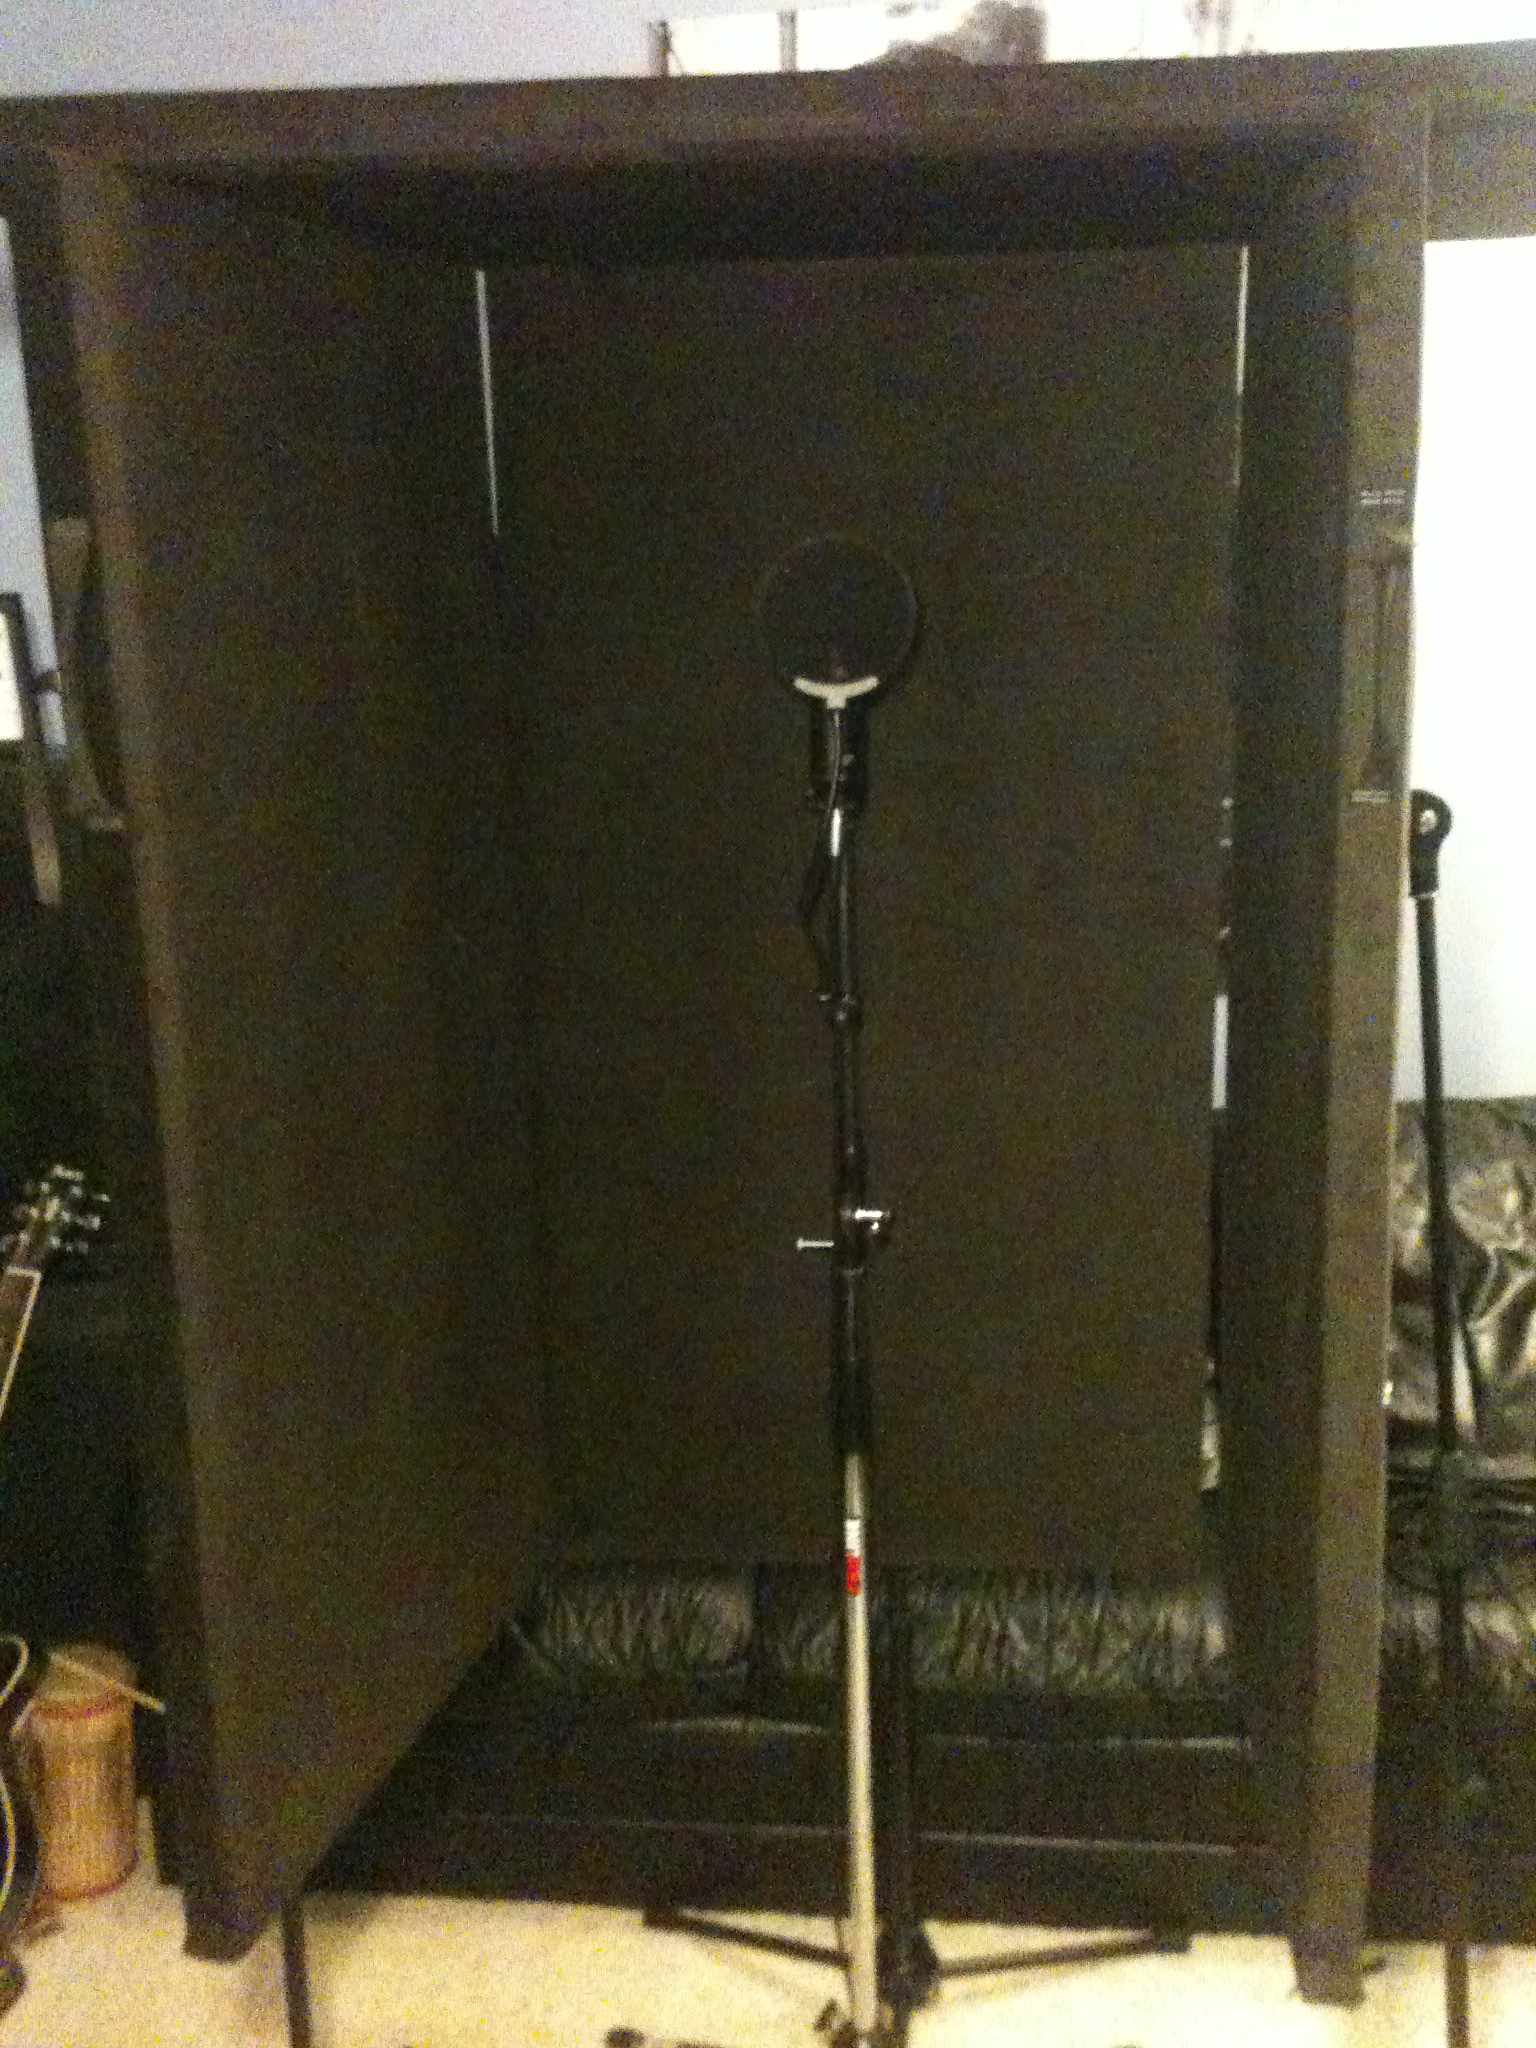 My diy portable vocal booth is complete gearslutz pro audio community my diy portable vocal booth is complete img0029g solutioingenieria Choice Image